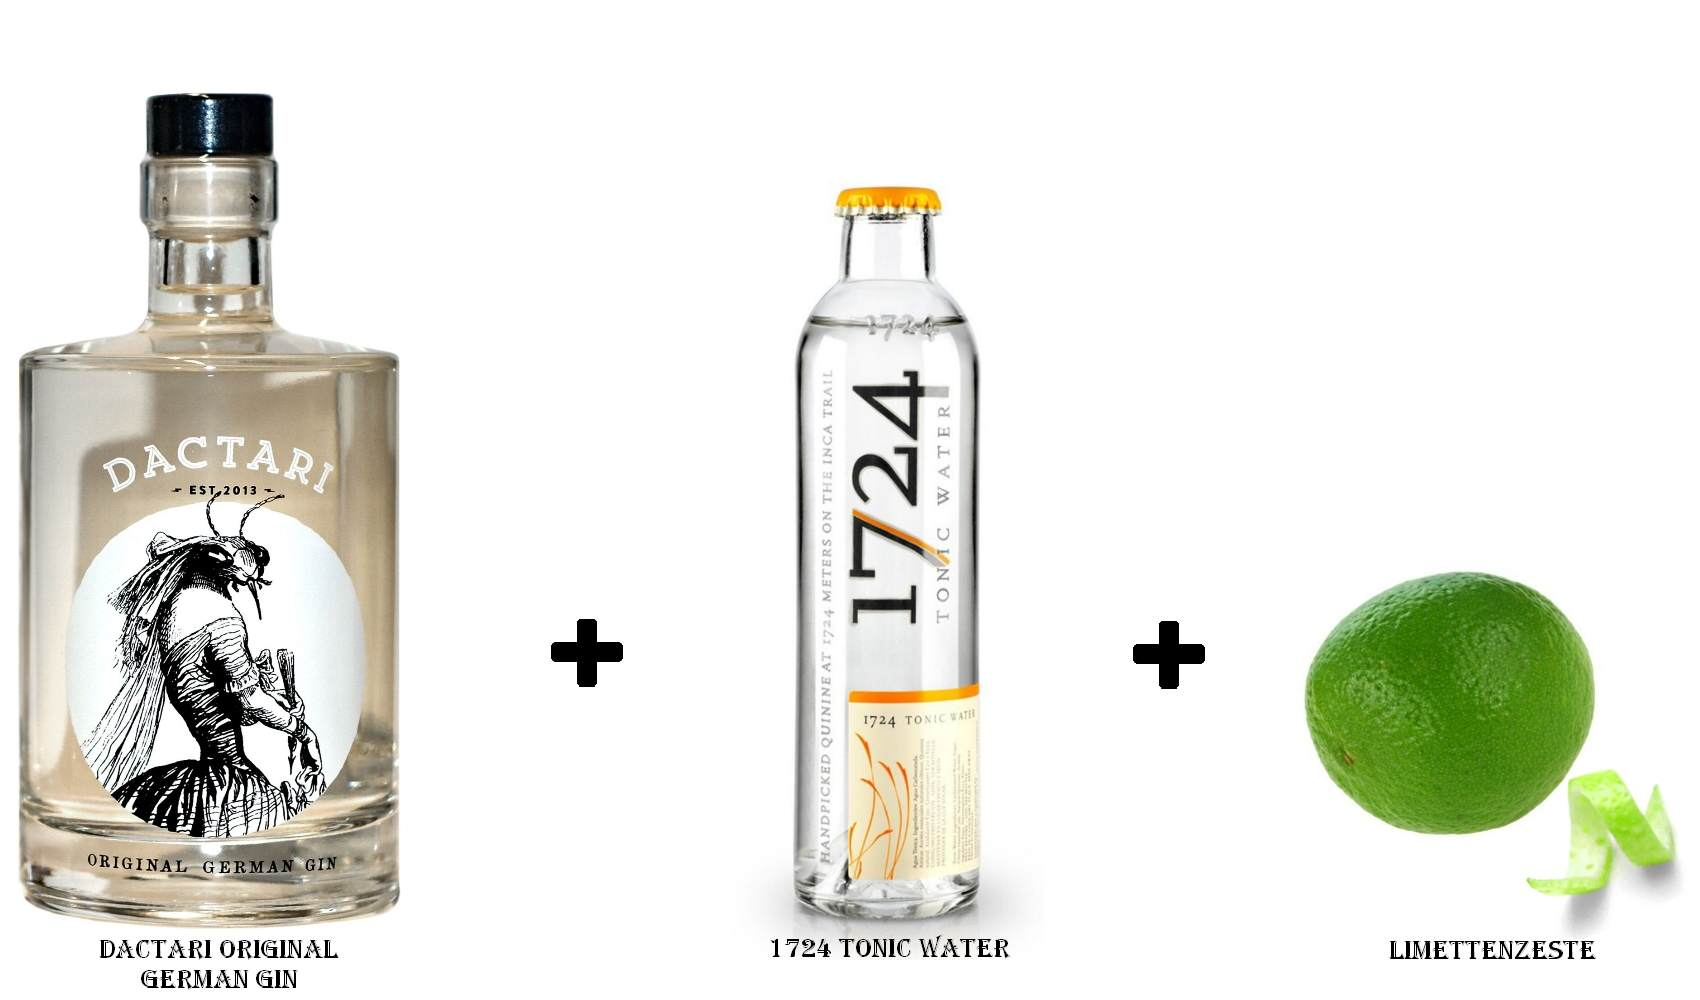 Dactari Original German Gin + 1724 Tonic Water + Limettenzeste